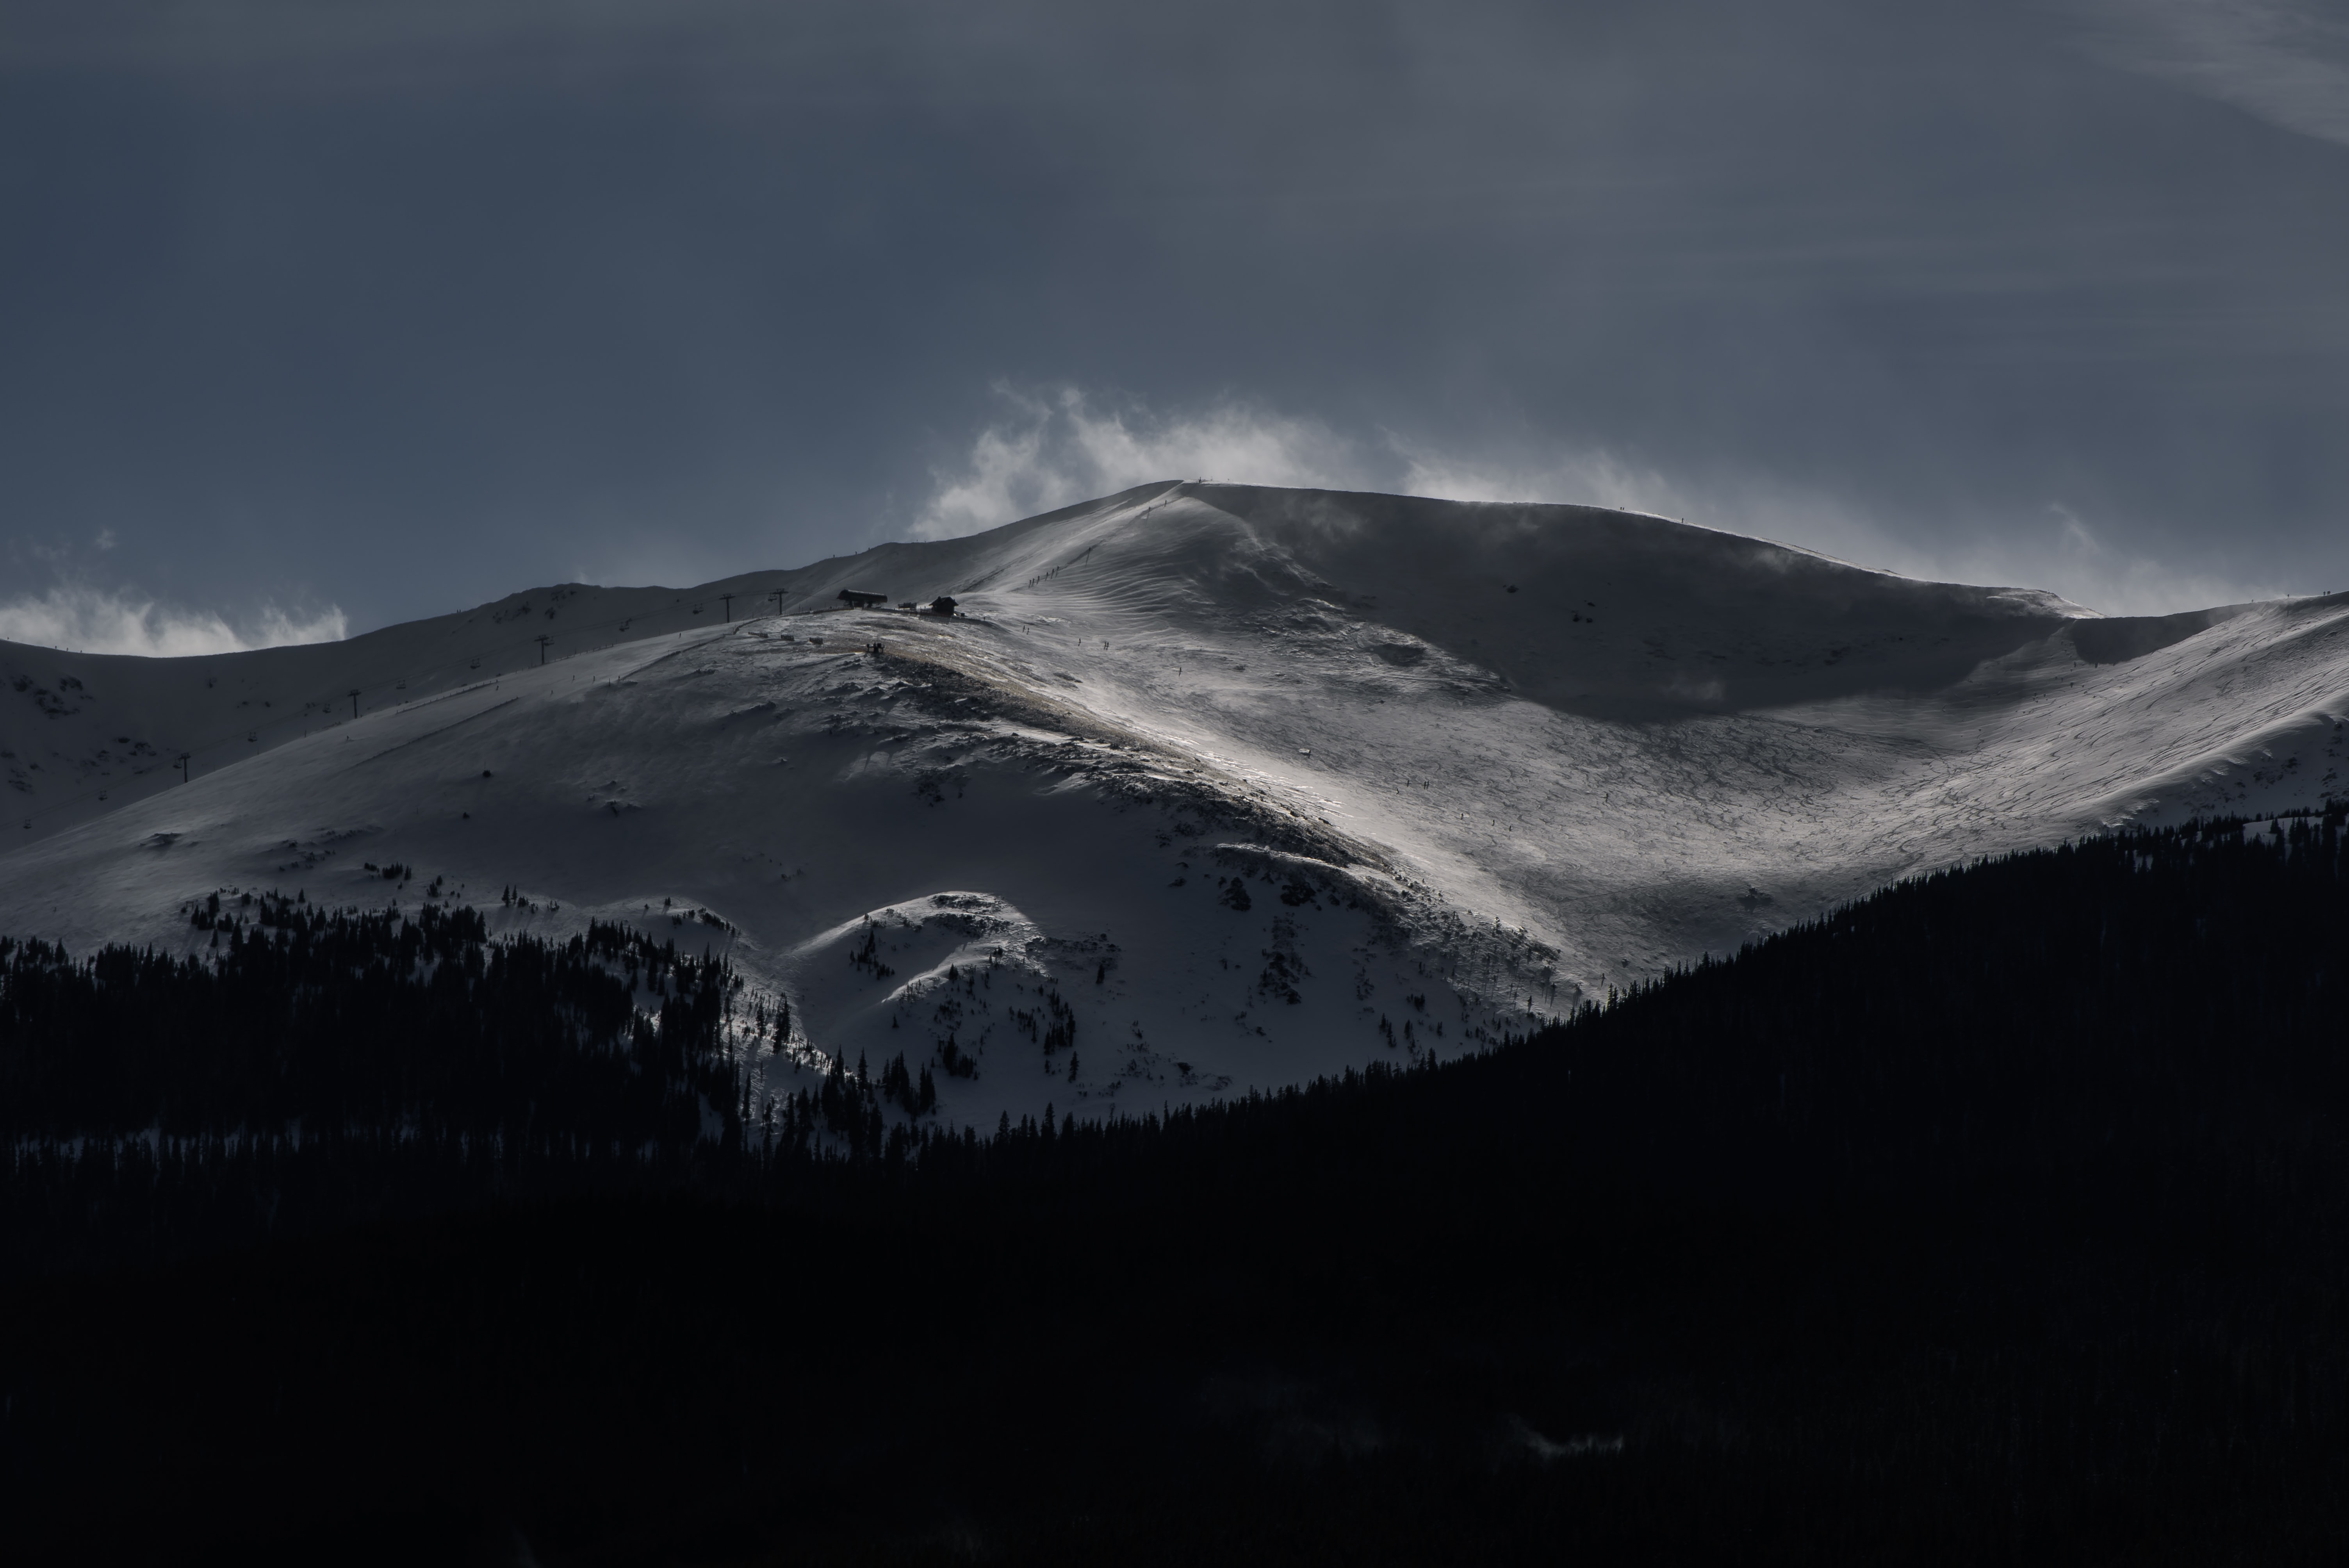 A snow-covered mountain slope with a ski lift in the evening